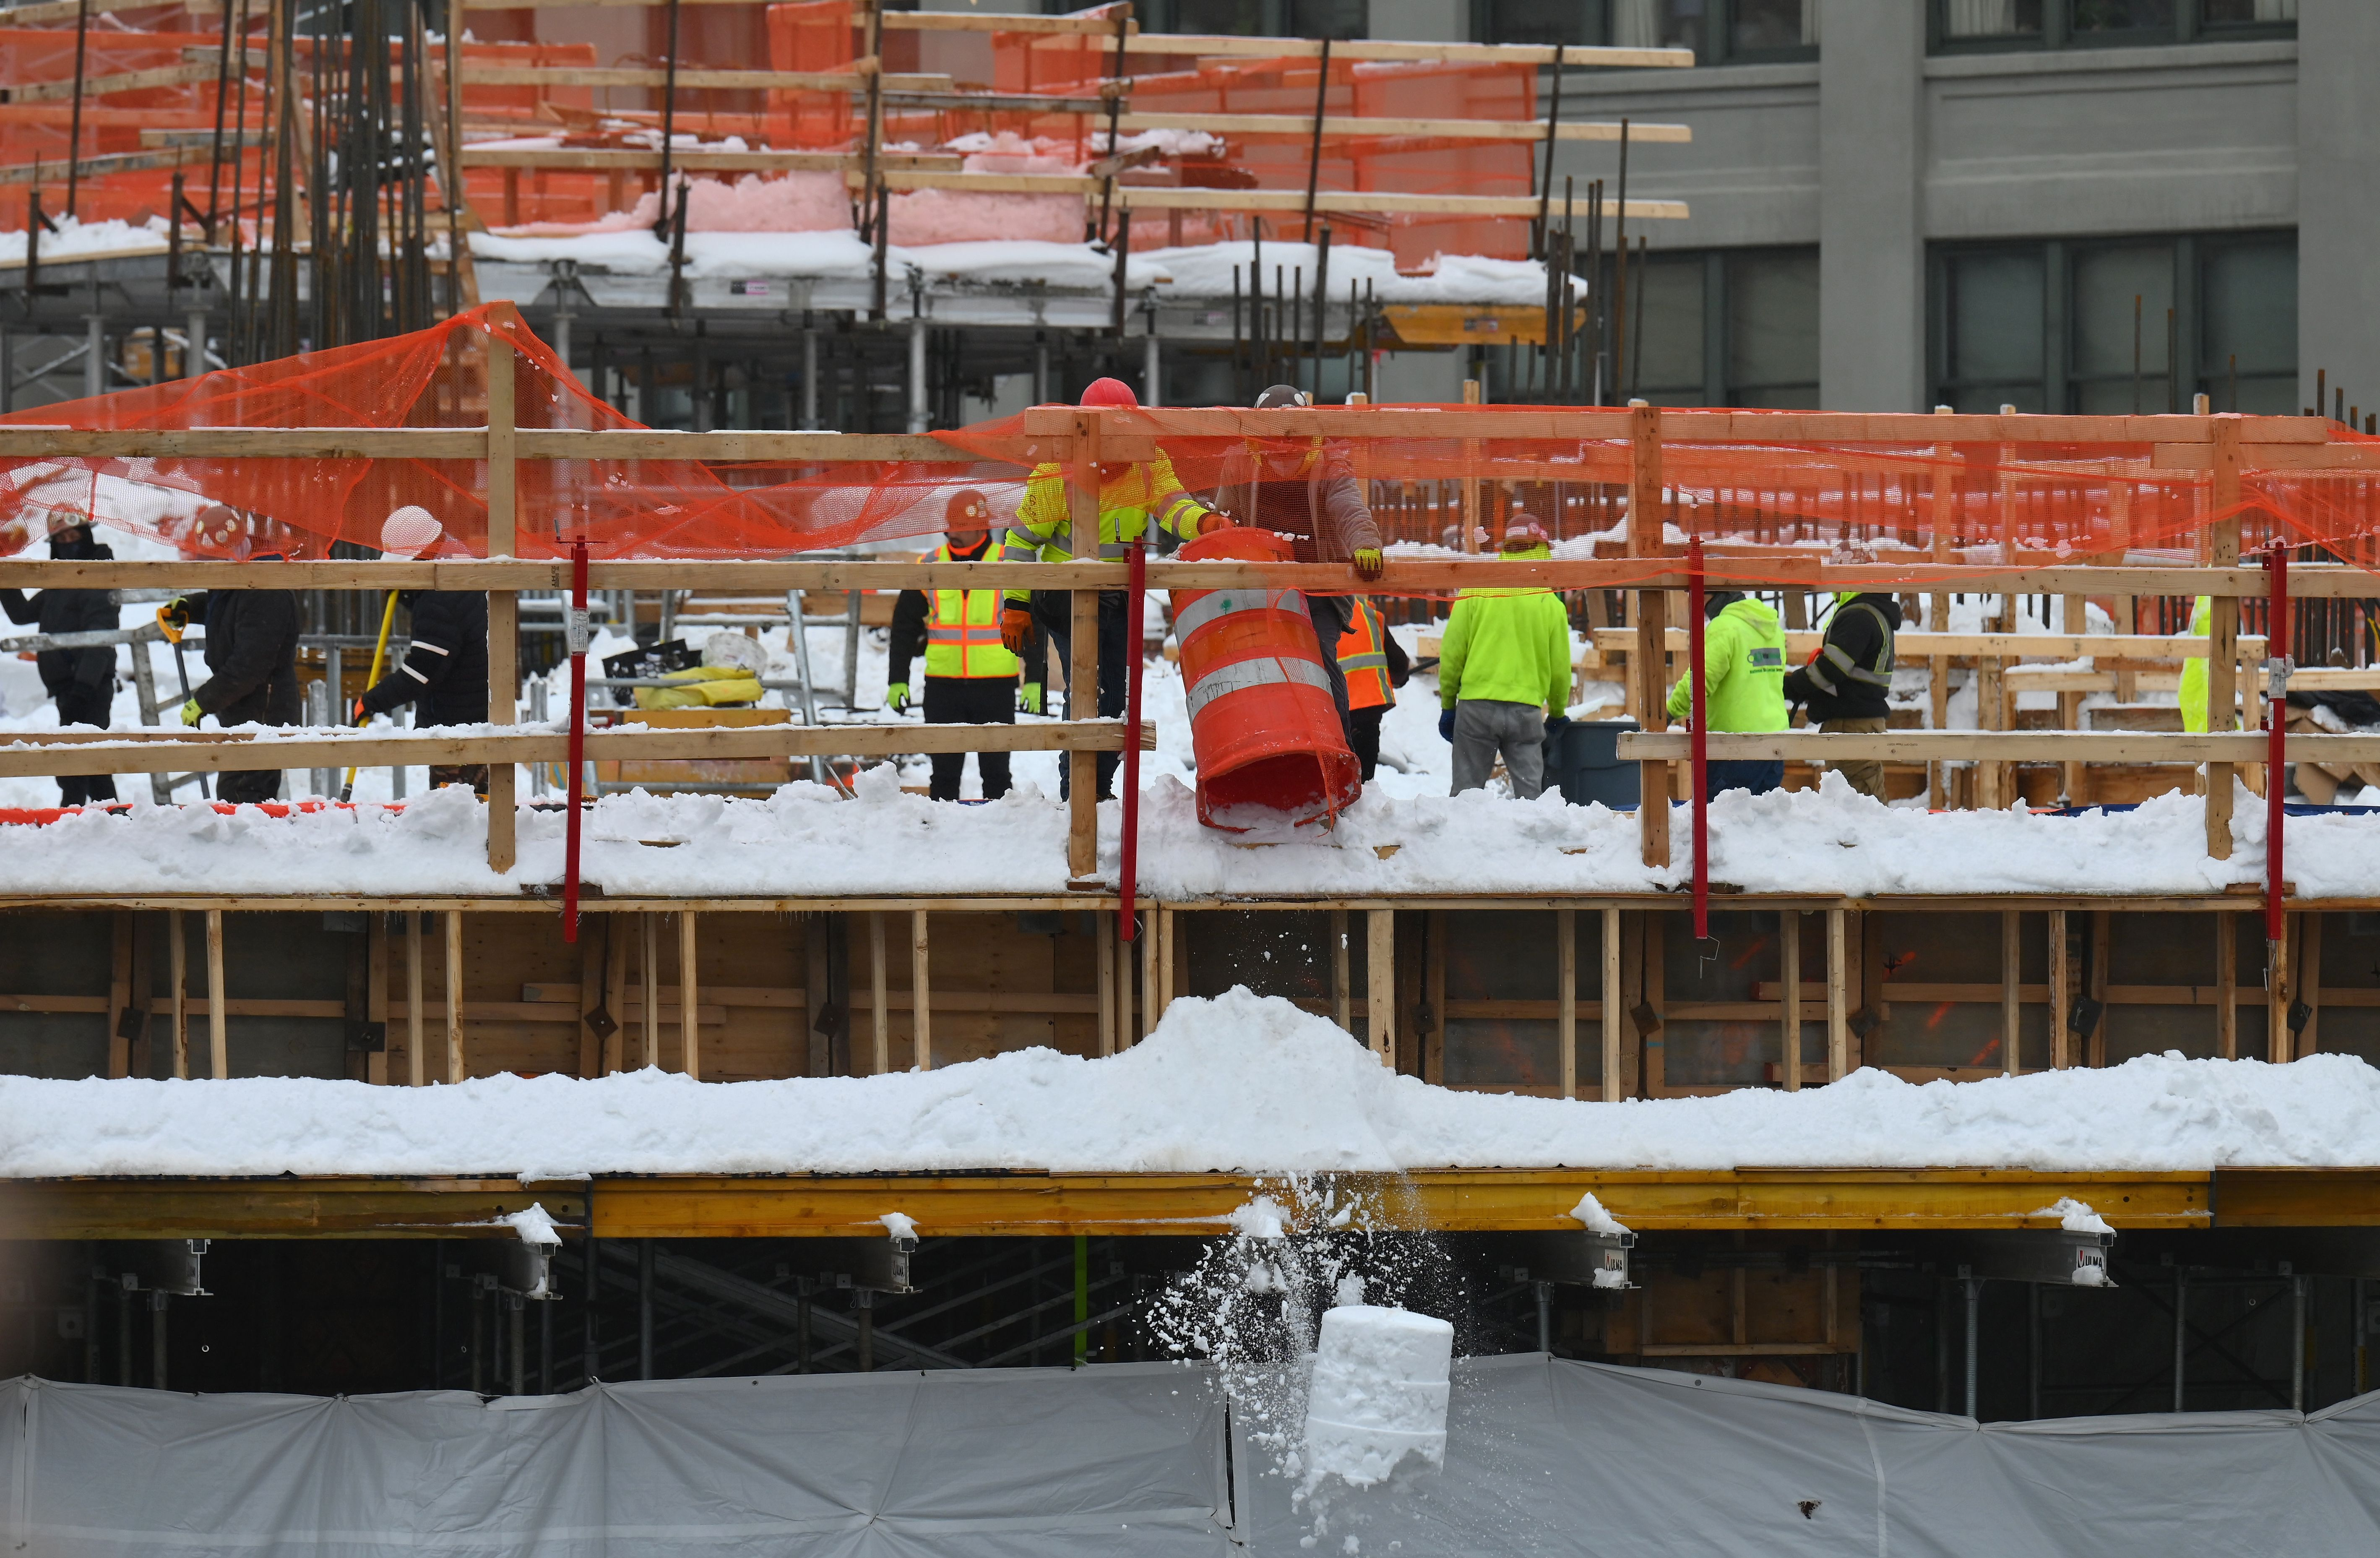 Construction workers free a building construction site of snow in the Brooklyn Borough of New York on February 2, 2021. - A huge snowstorm has brought chaos to the United States' east coast, shuttering airports, closing schools and forcing the postponement of coronavirus vaccinations into Tuesday morning as New York City steeled itself for possibly one of its heaviest ever snowfalls. New York declared a state of emergency restricting non-essential travel, moved all children back to remote learning and rescheduled long-awaited vaccine shots as some parts of the city were hit by more than 18 inches (1.5 feet) of snow. CNN meteorologists said that figure could reach two feet before the storm comes to an end. (Photo by Angela Weiss / AFP) (Photo by ANGELA WEISS/AFP via Getty Images)